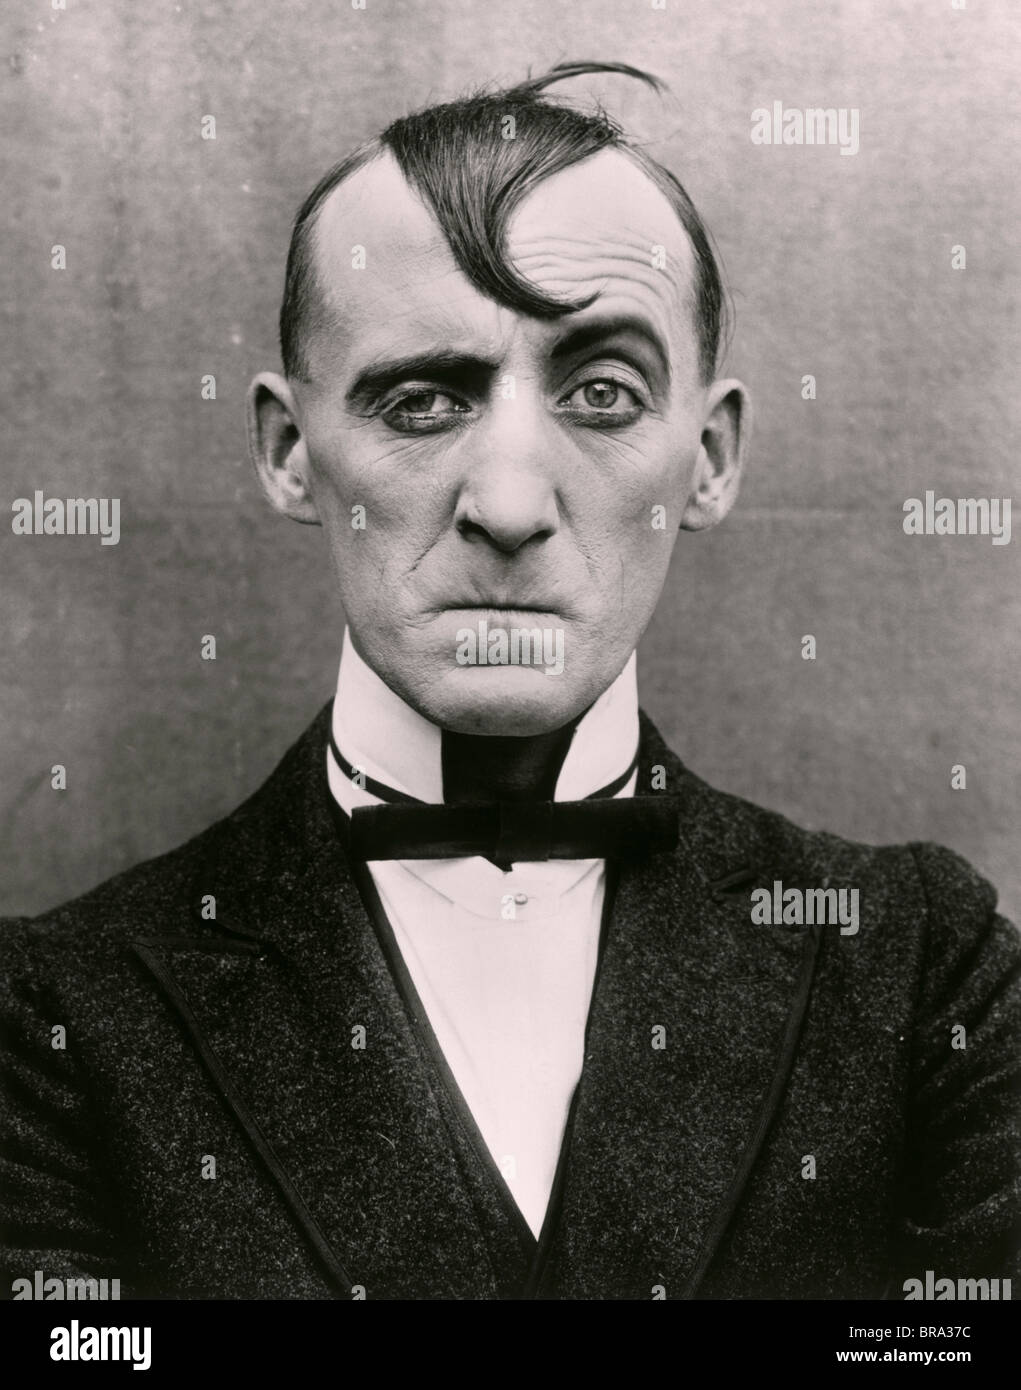 1910s 1920s man character sour puss movie actor stock